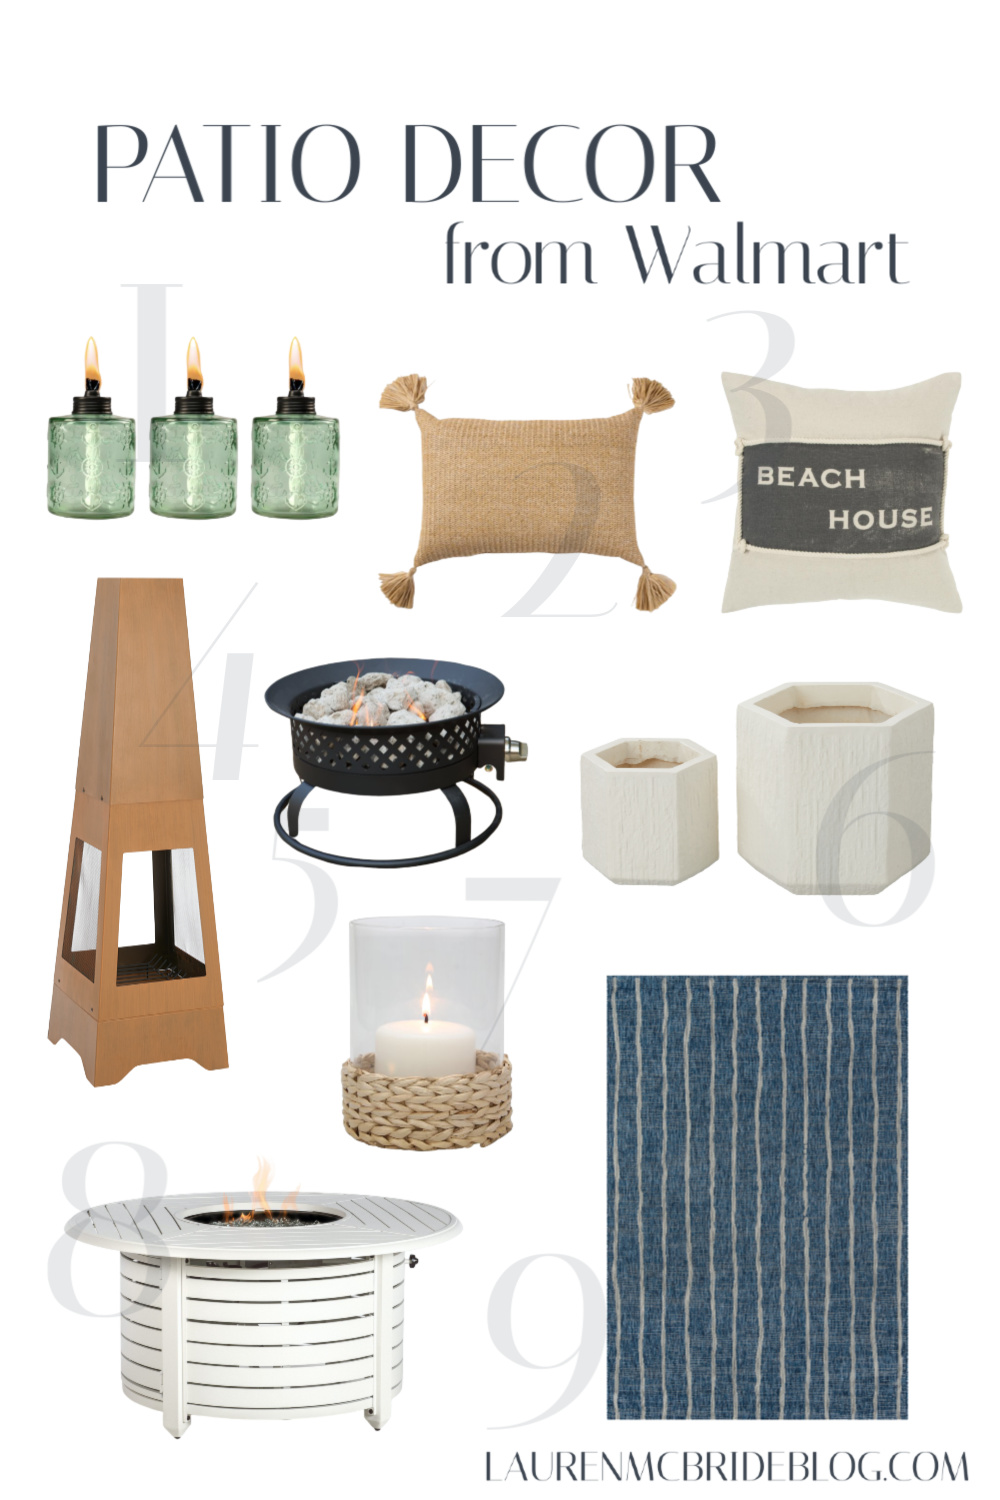 Connecticut life and style blogger Lauren McBride shares a round up of Patio Decor from Walmart, including outdoor rugs, pillows, and decor options.